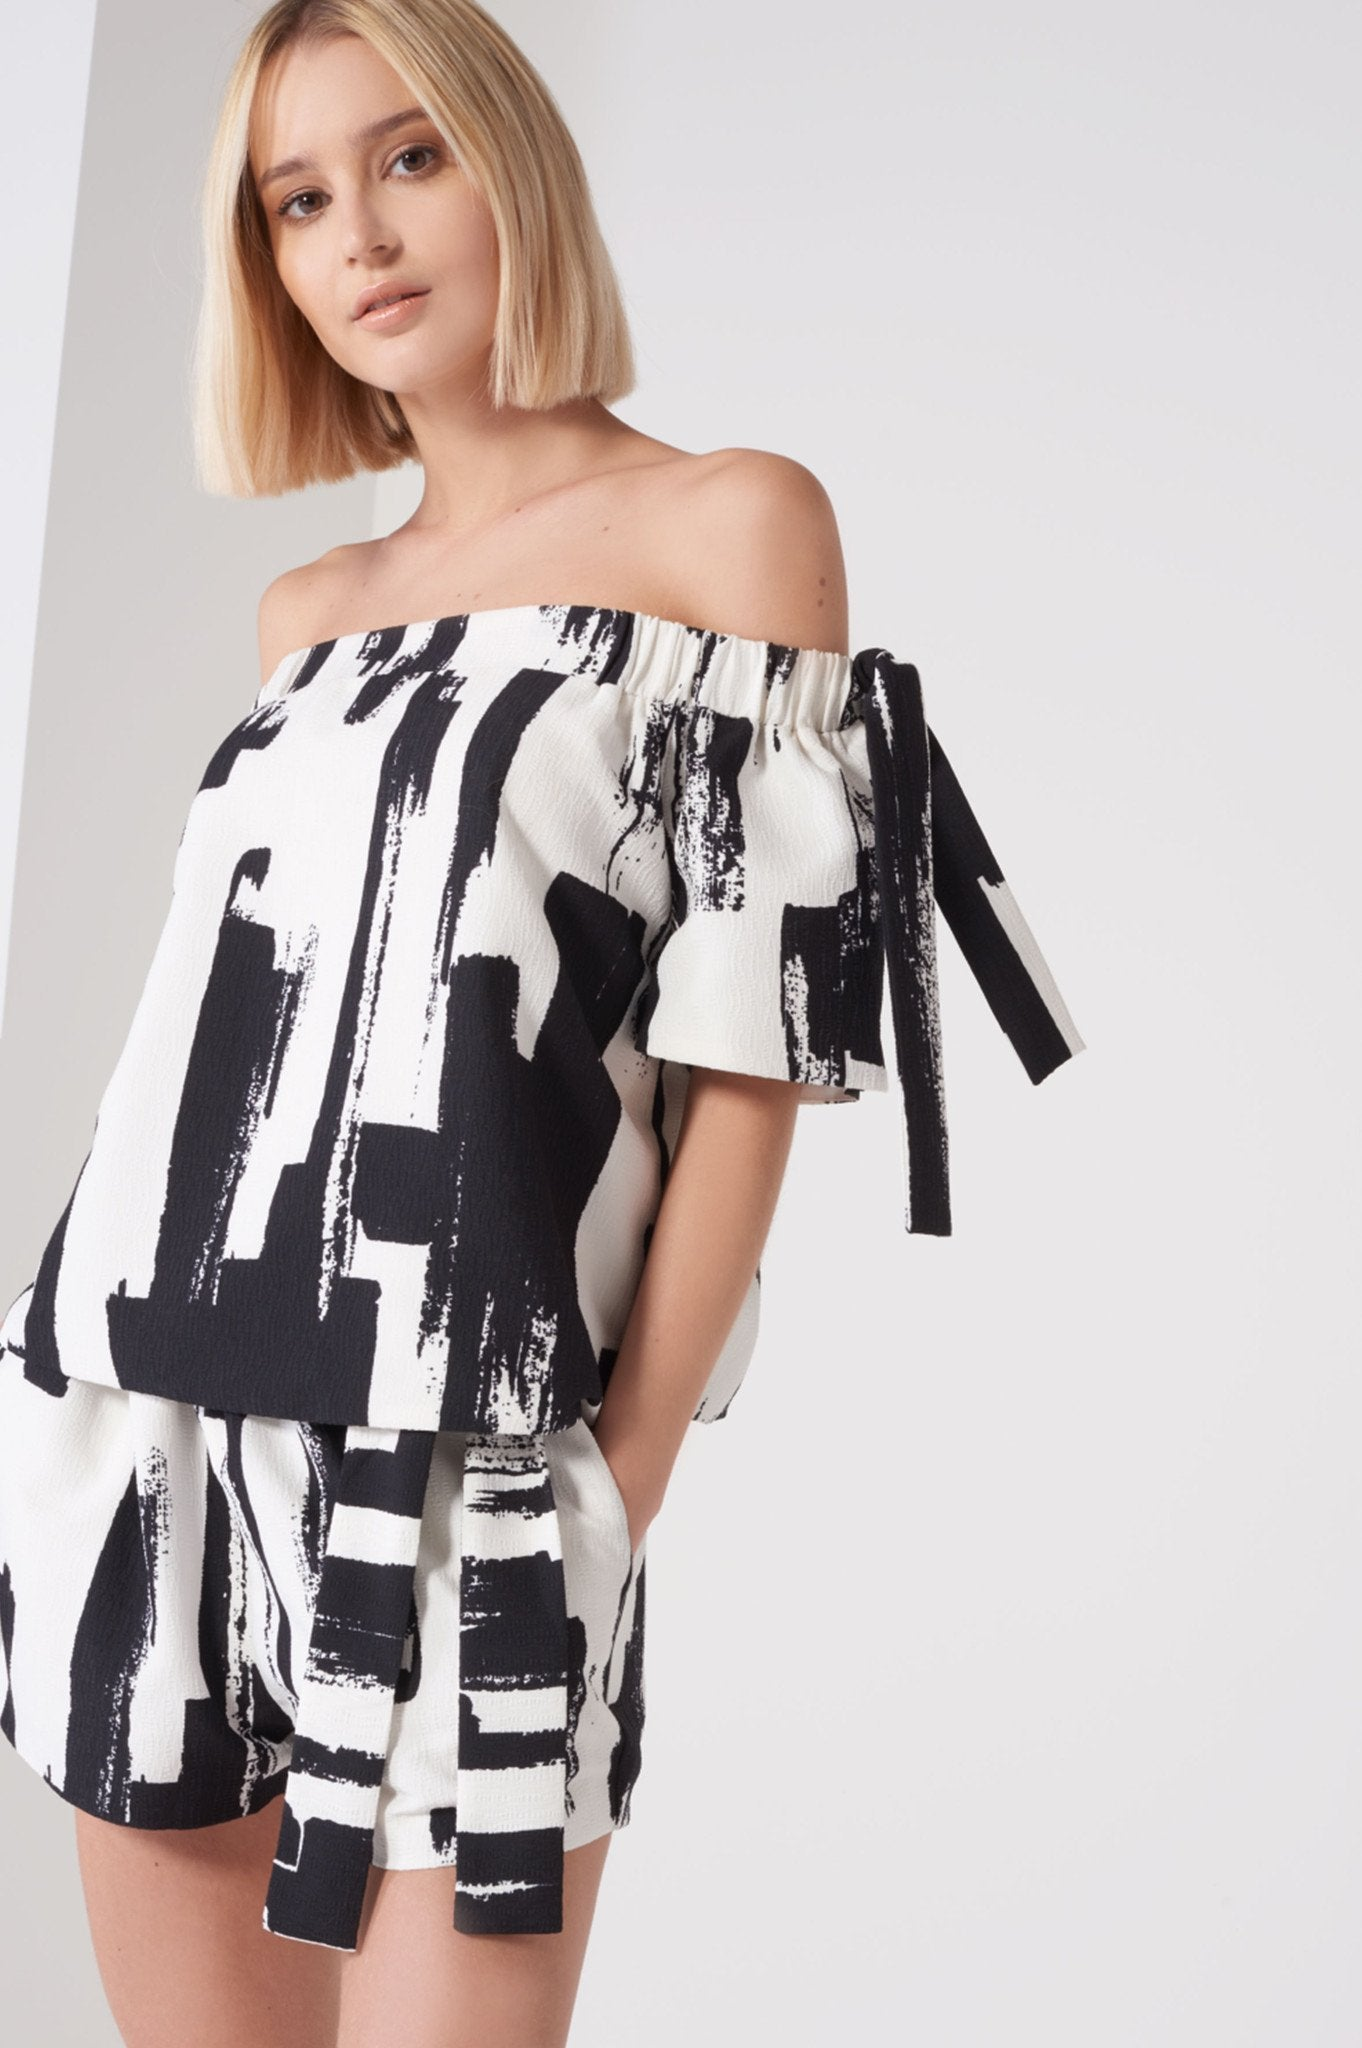 Shop Lavish Alice Top Lavish Alice Monochrome Brush Print Tie Sleeve Bardot Top Second Thread